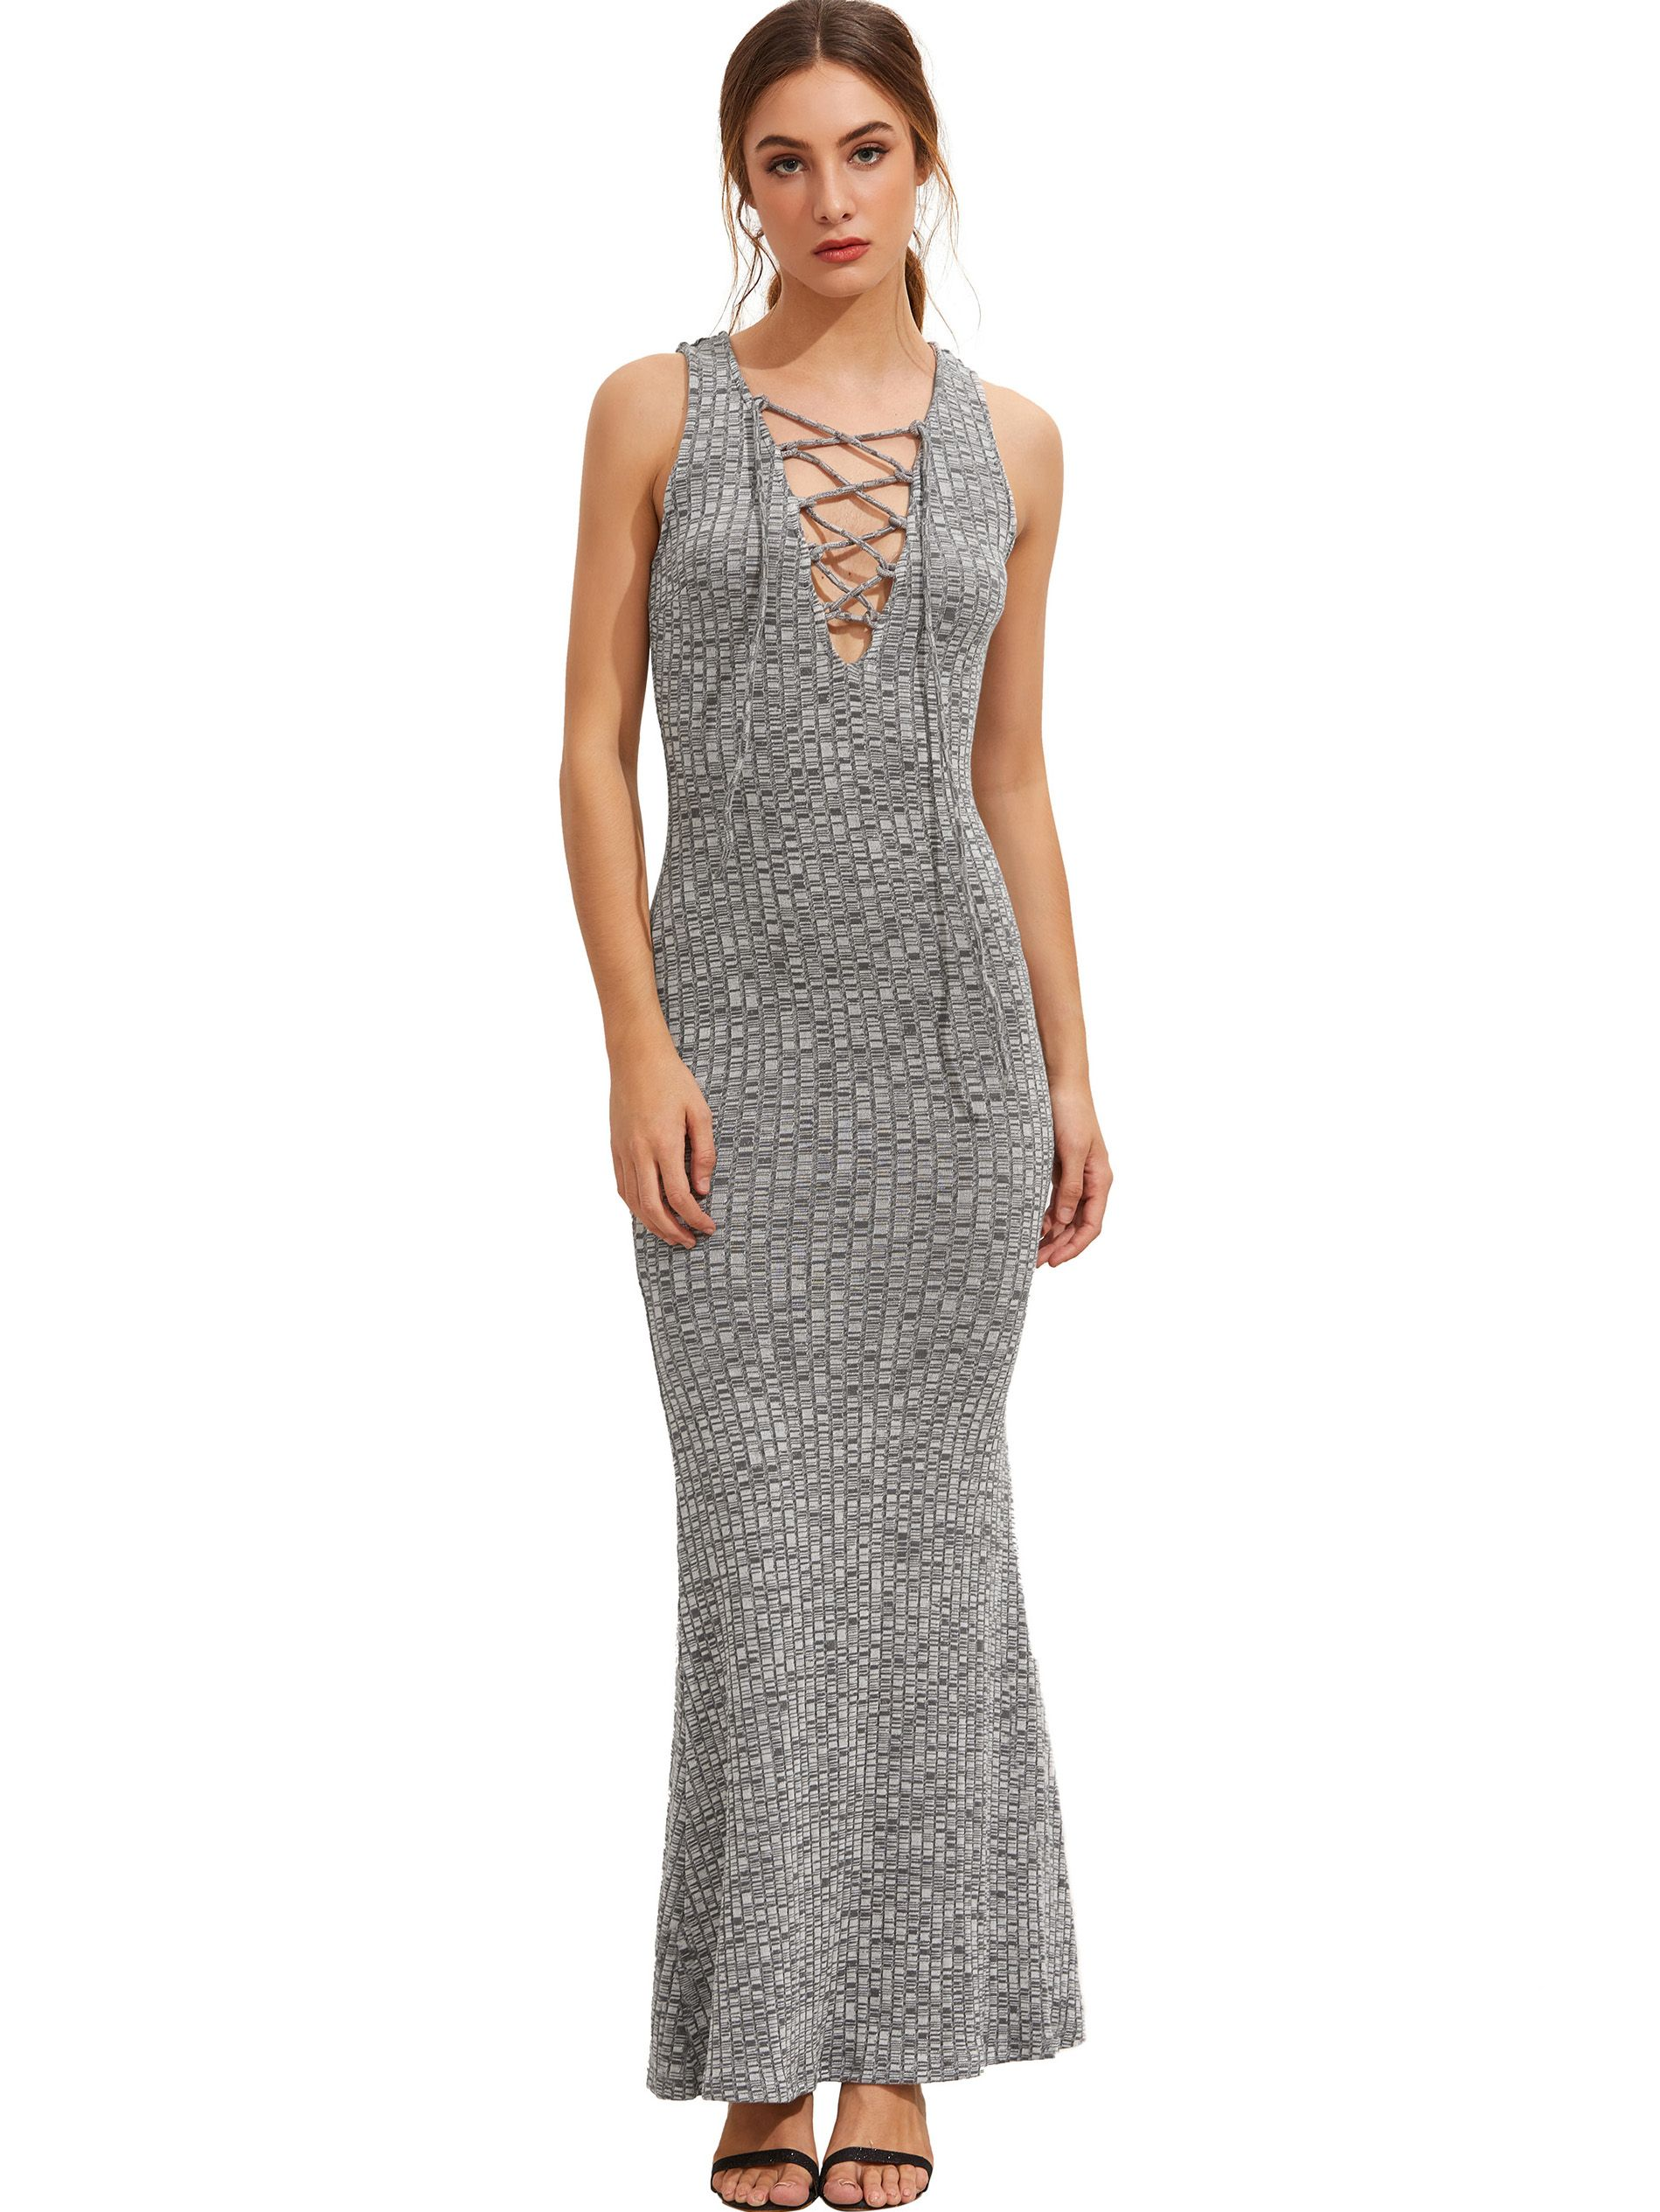 8b25a6a3dd3 Shop Grey Sleeveless Lace Up Maxi Dress online. SheIn offers Grey Sleeveless  Lace Up Maxi Dress   more to fit your fashionable needs.